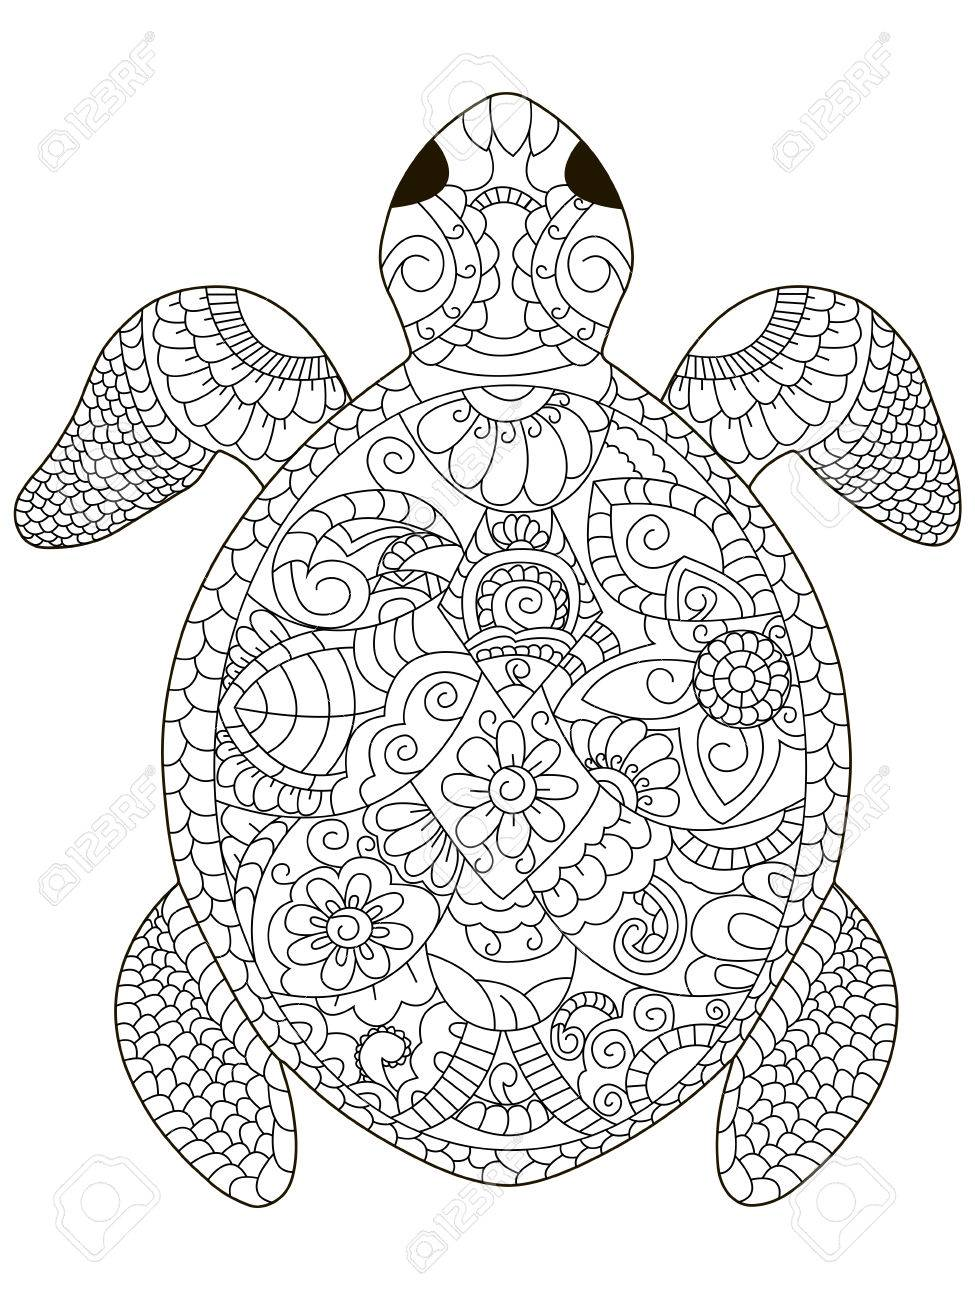 sea turtle coloring book for adults vector illustration. Anti-stress..